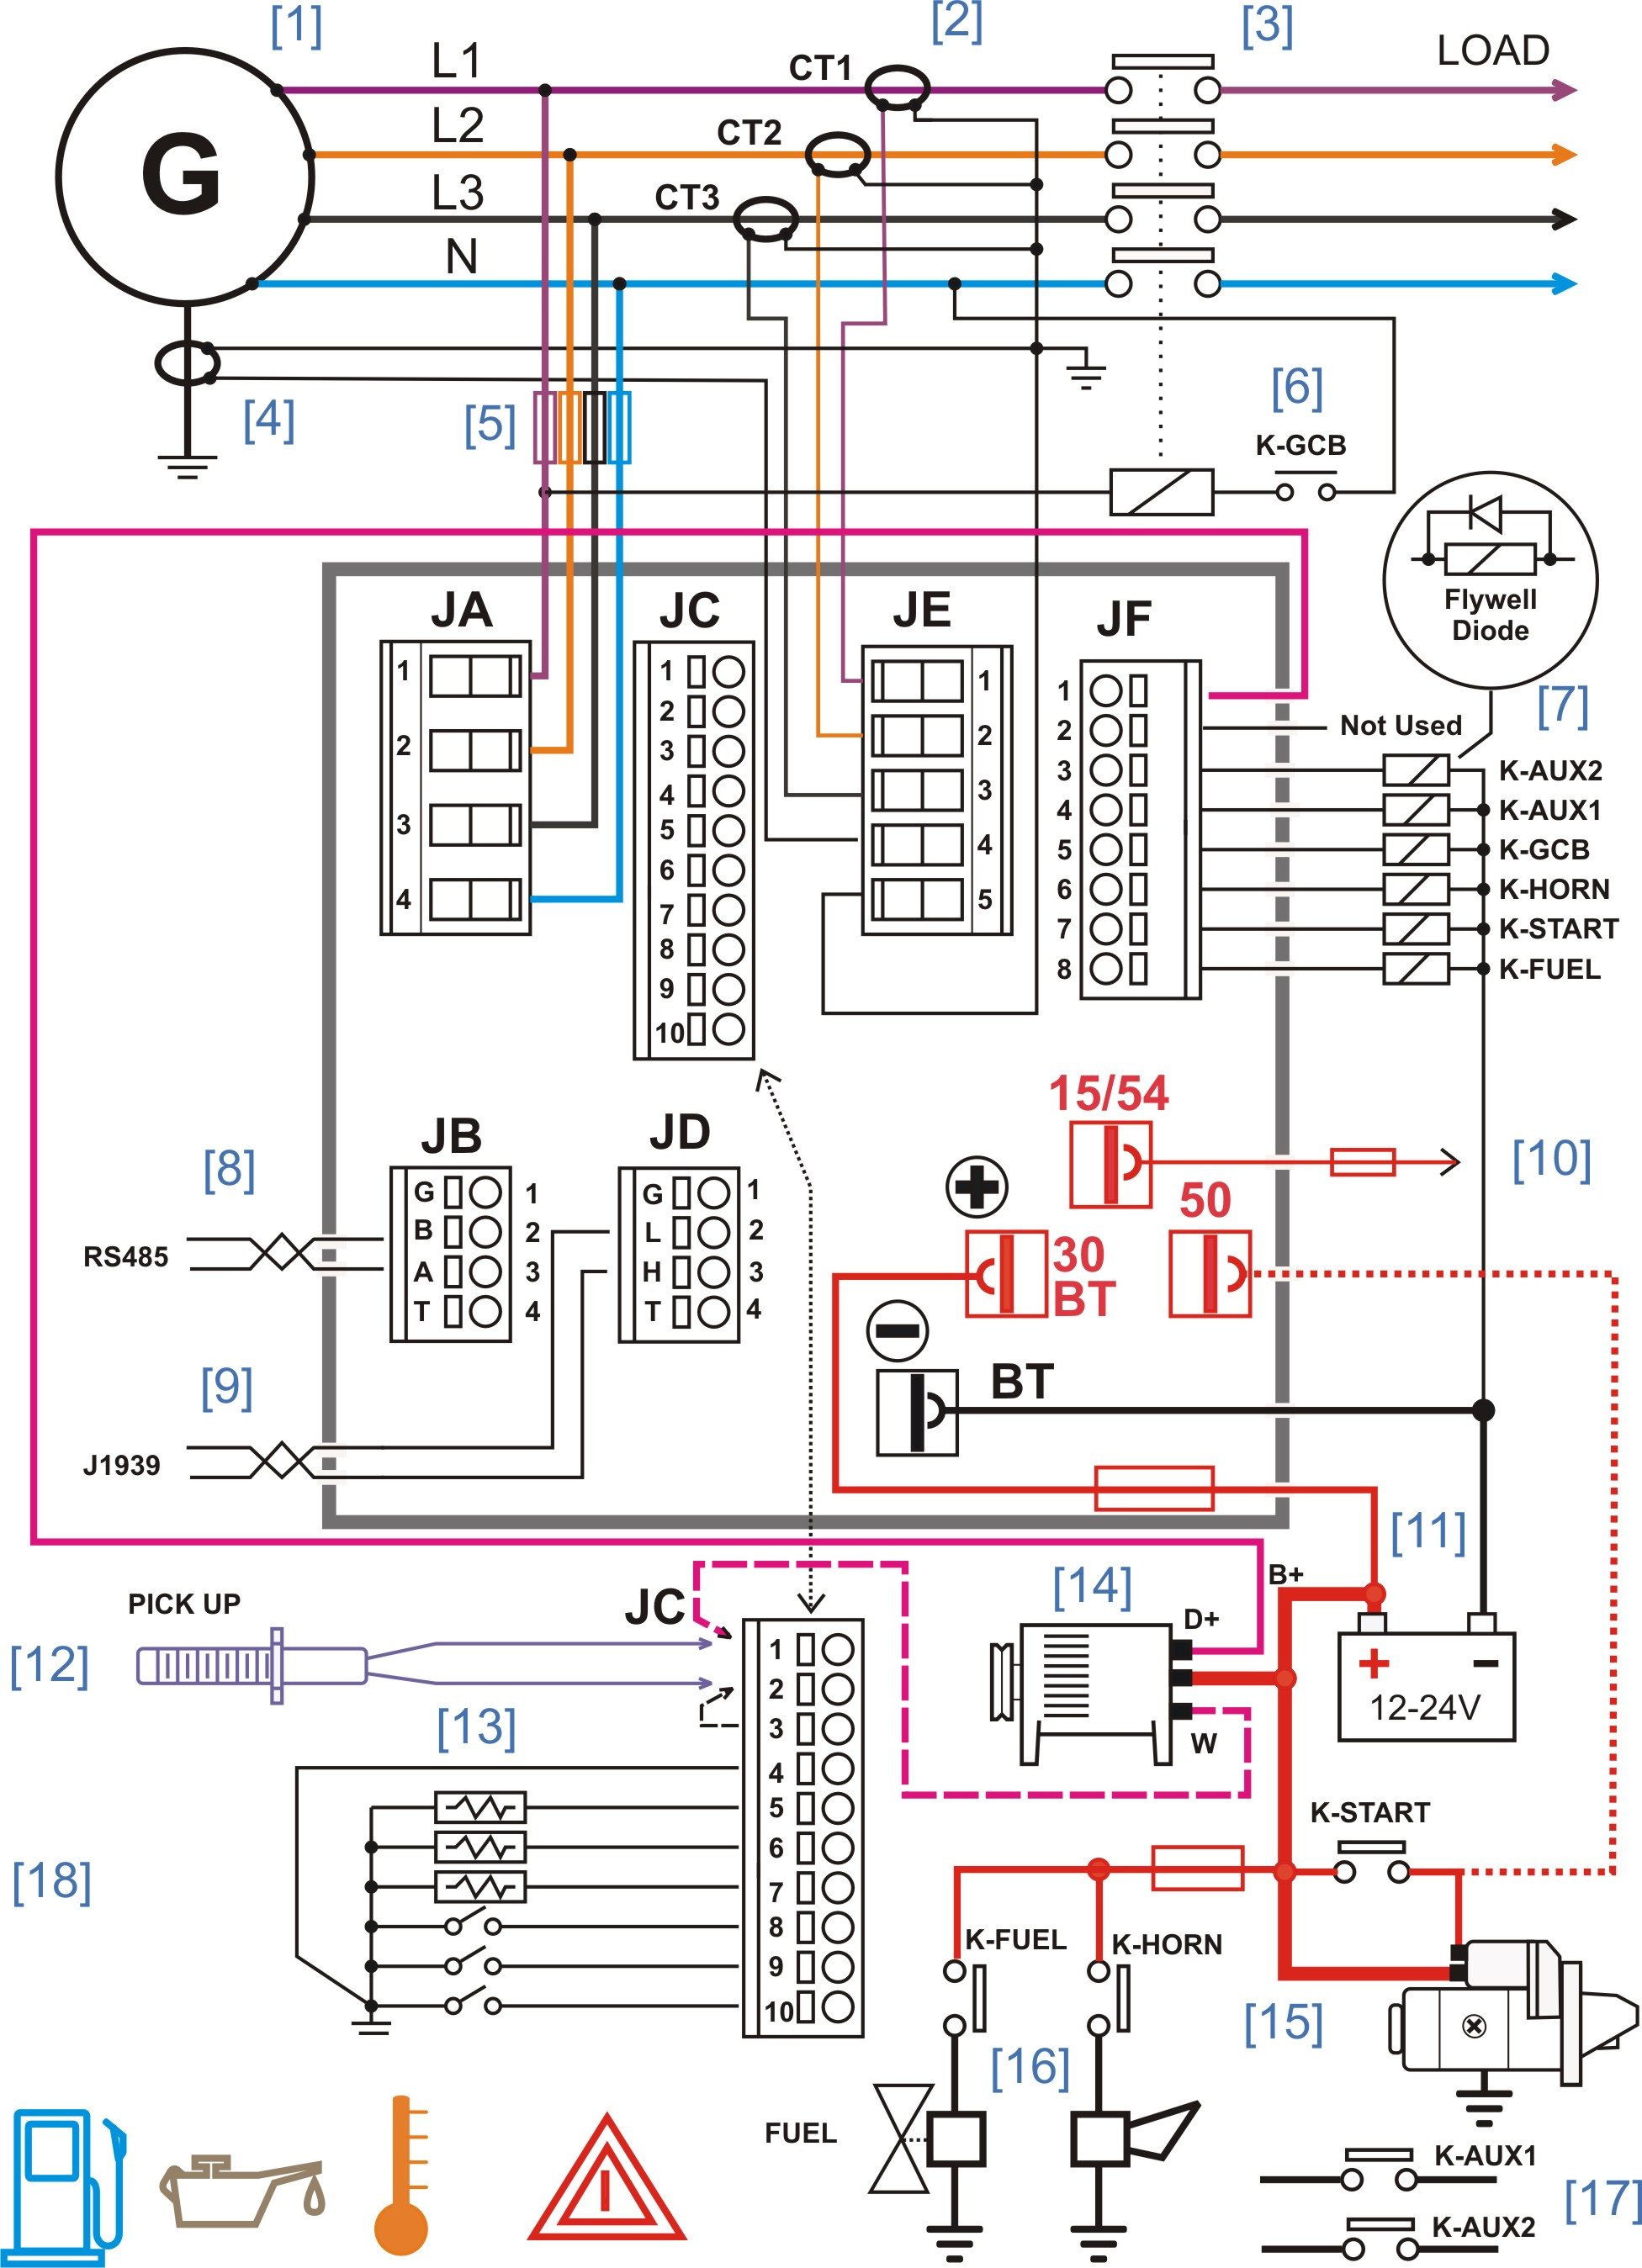 Connection Diagram Olympian Generator - Data Wiring Diagram Schematic - Wiring Diagram Maker